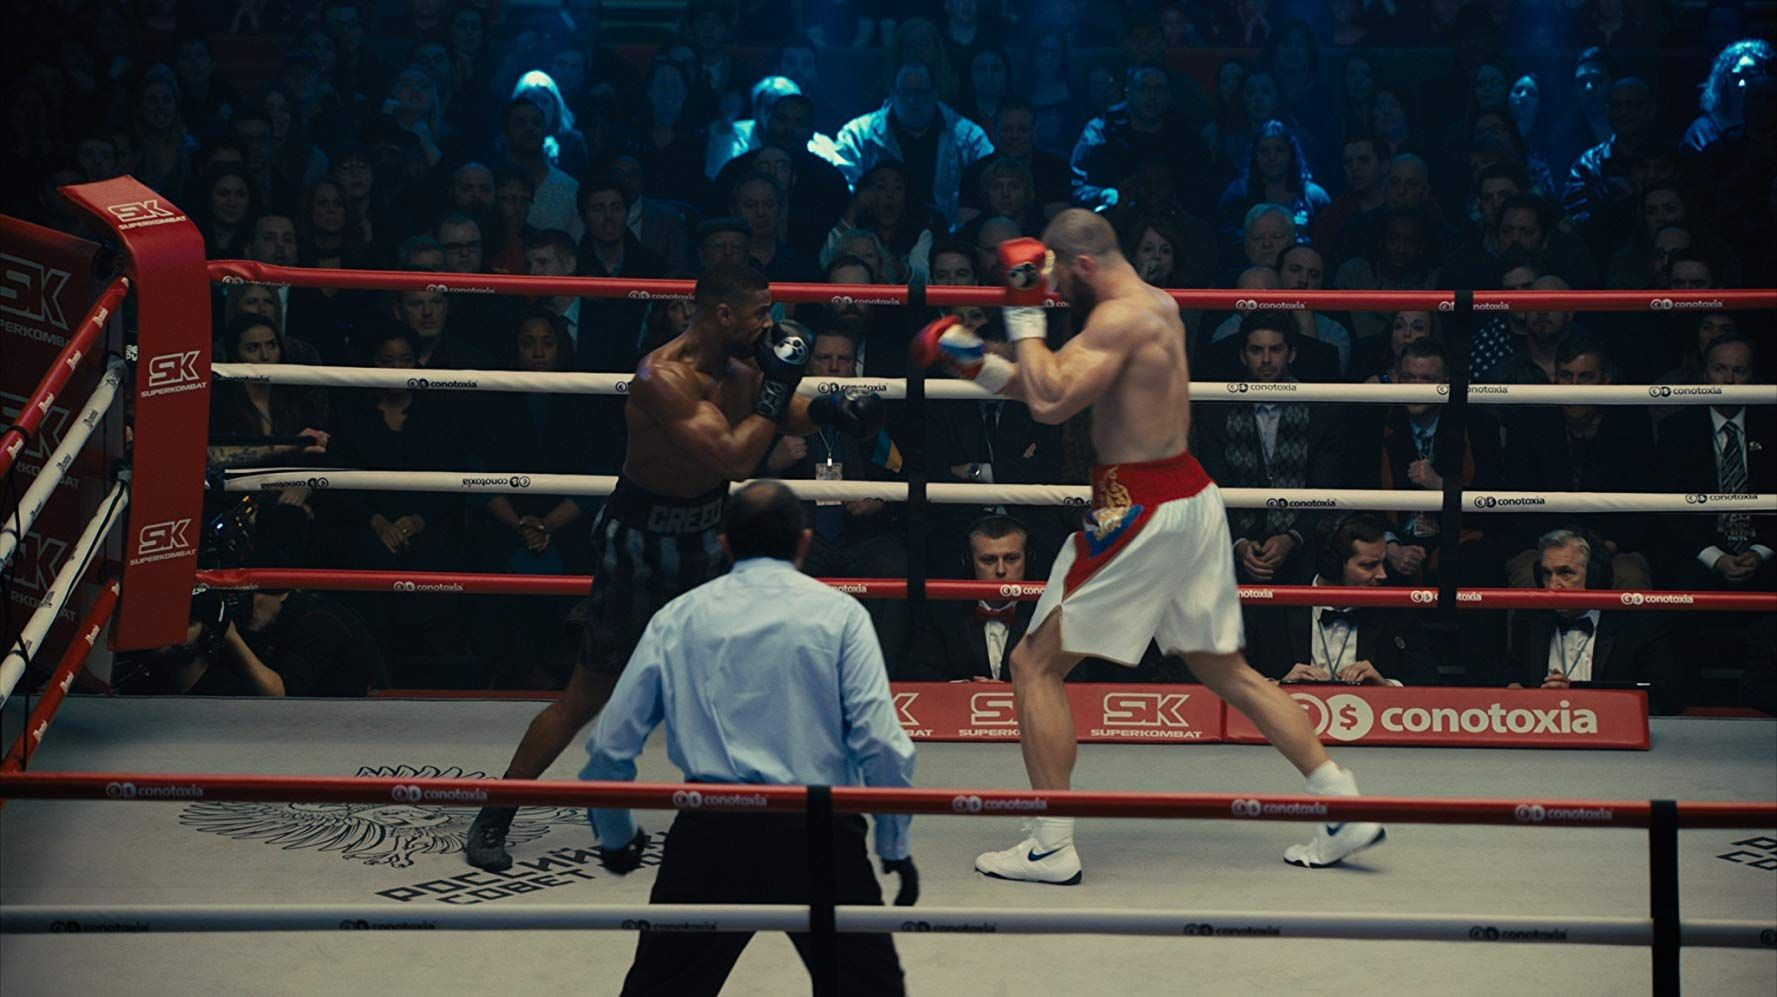 Creed II Review: It's an Even Better Version of Rocky IV